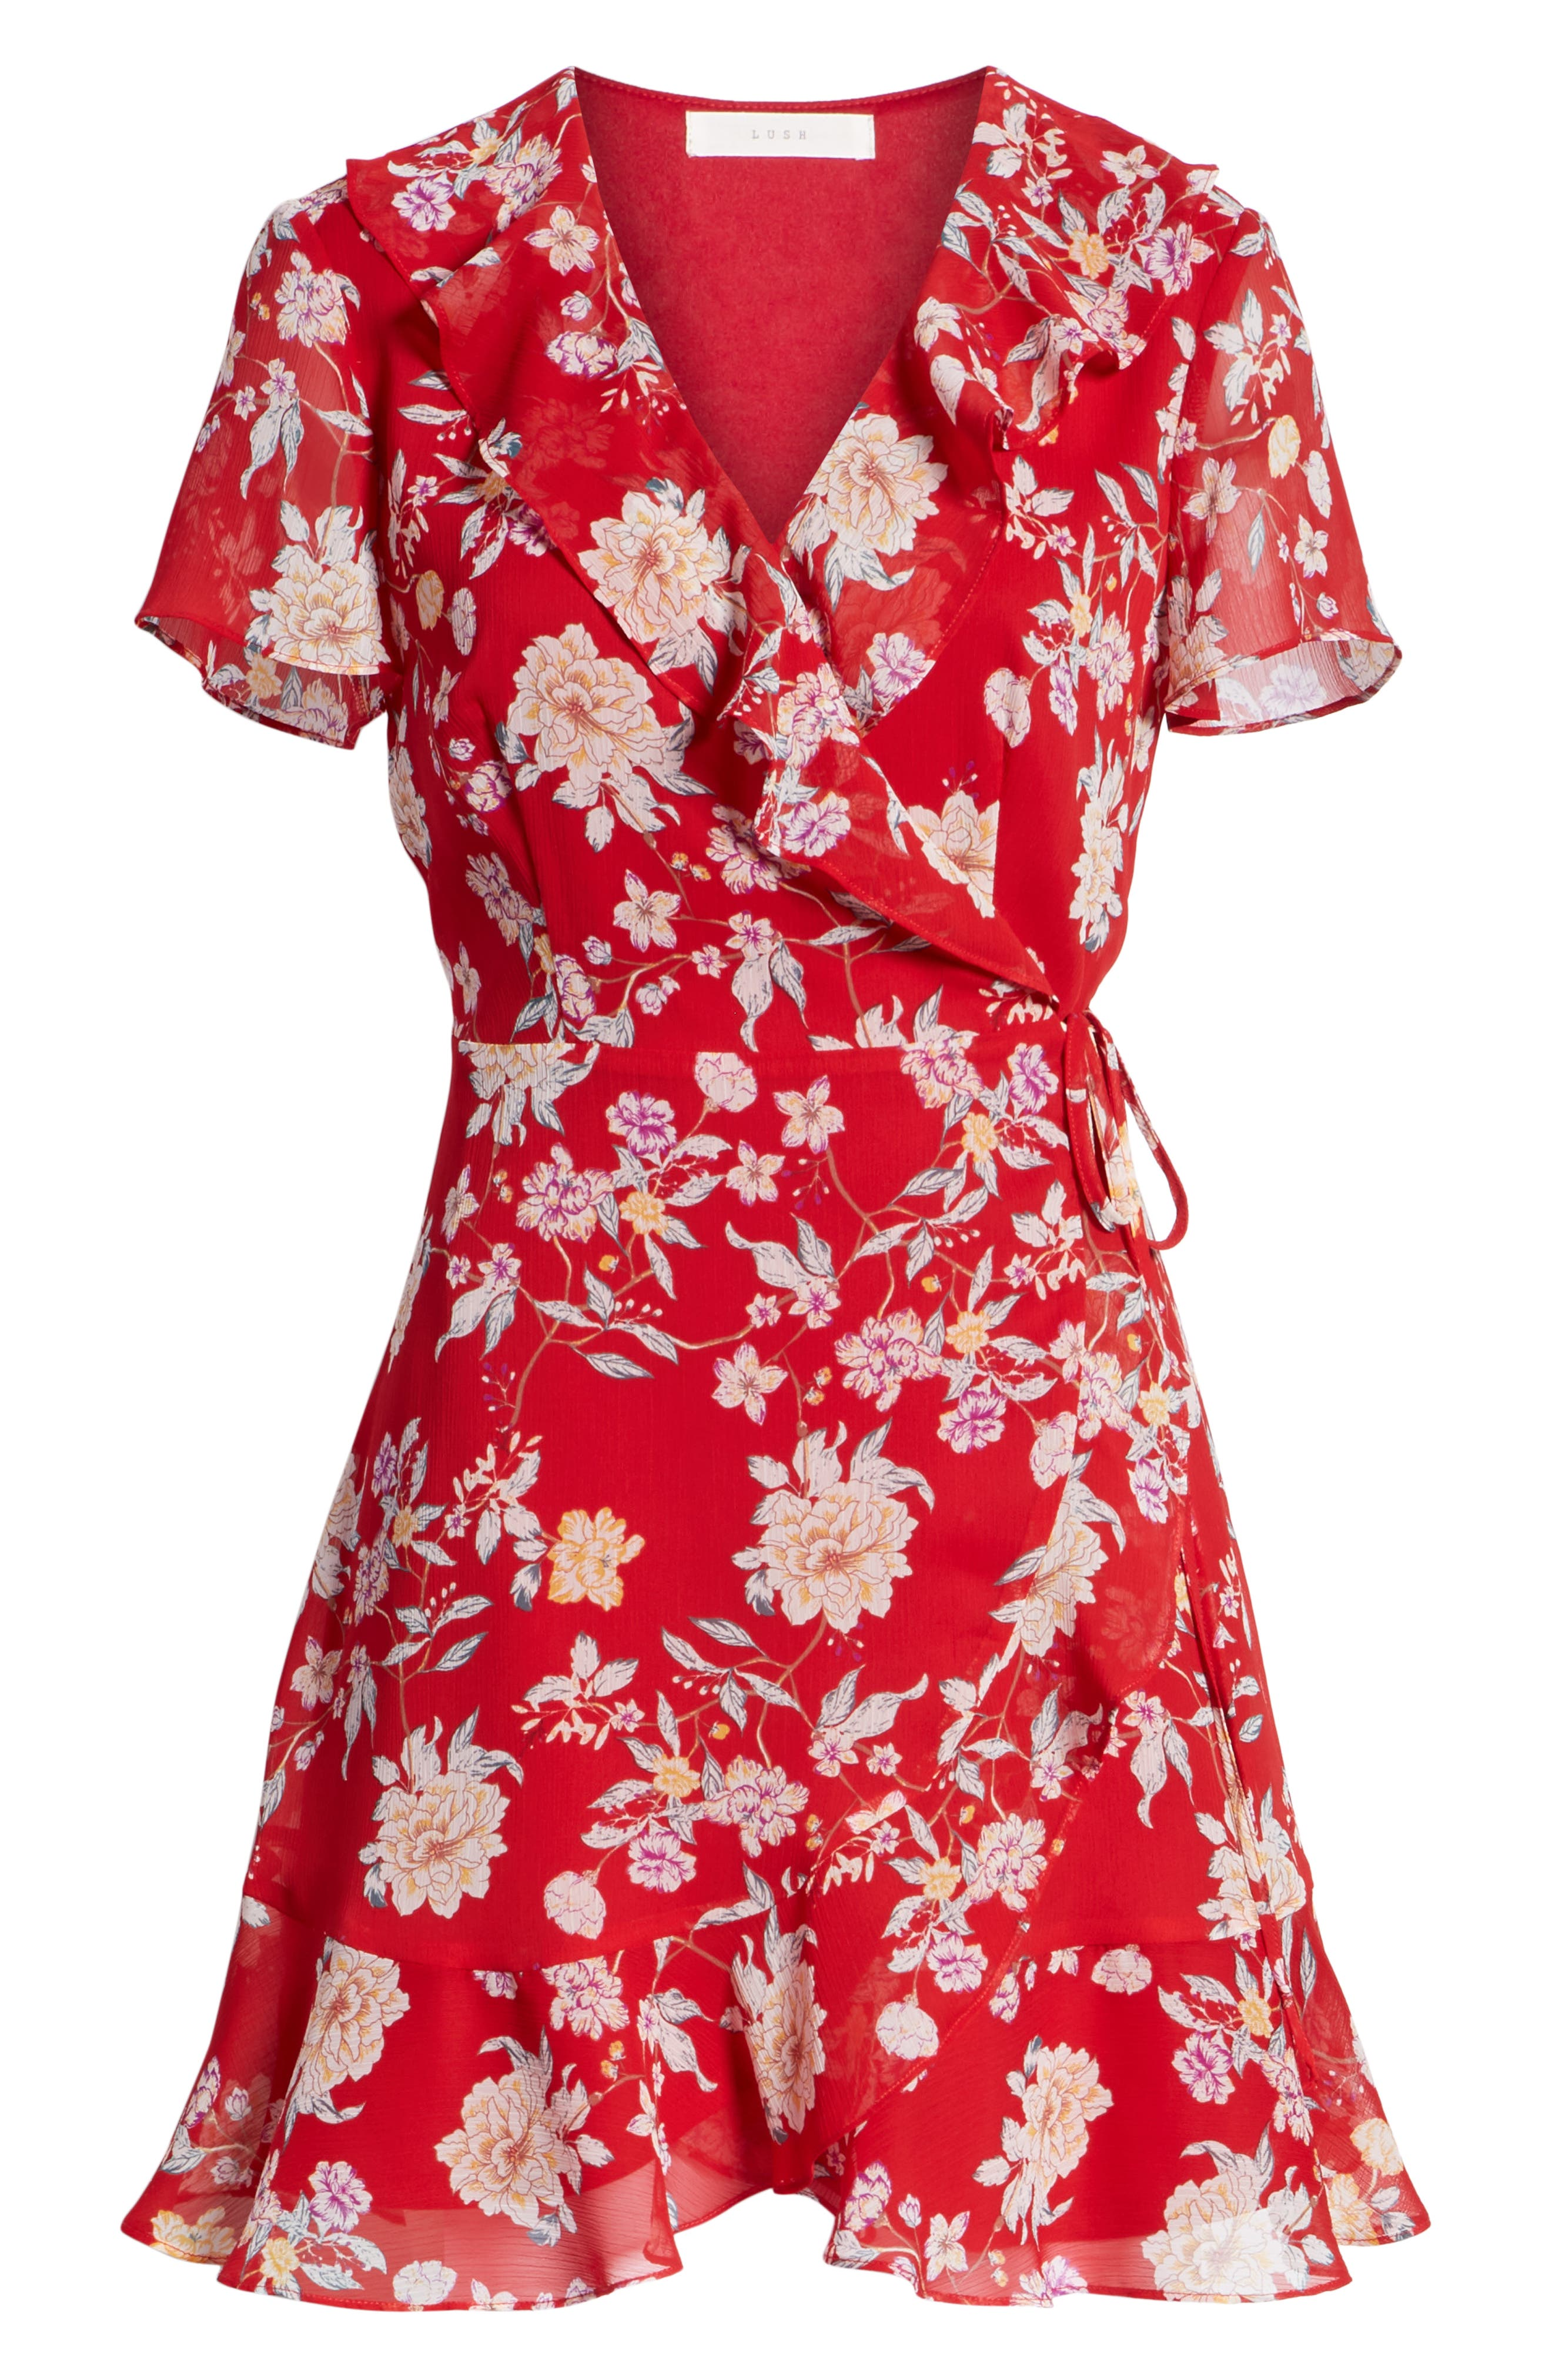 Colie Ruffle Wrap Dress,                             Alternate thumbnail 6, color,                             Red Floral